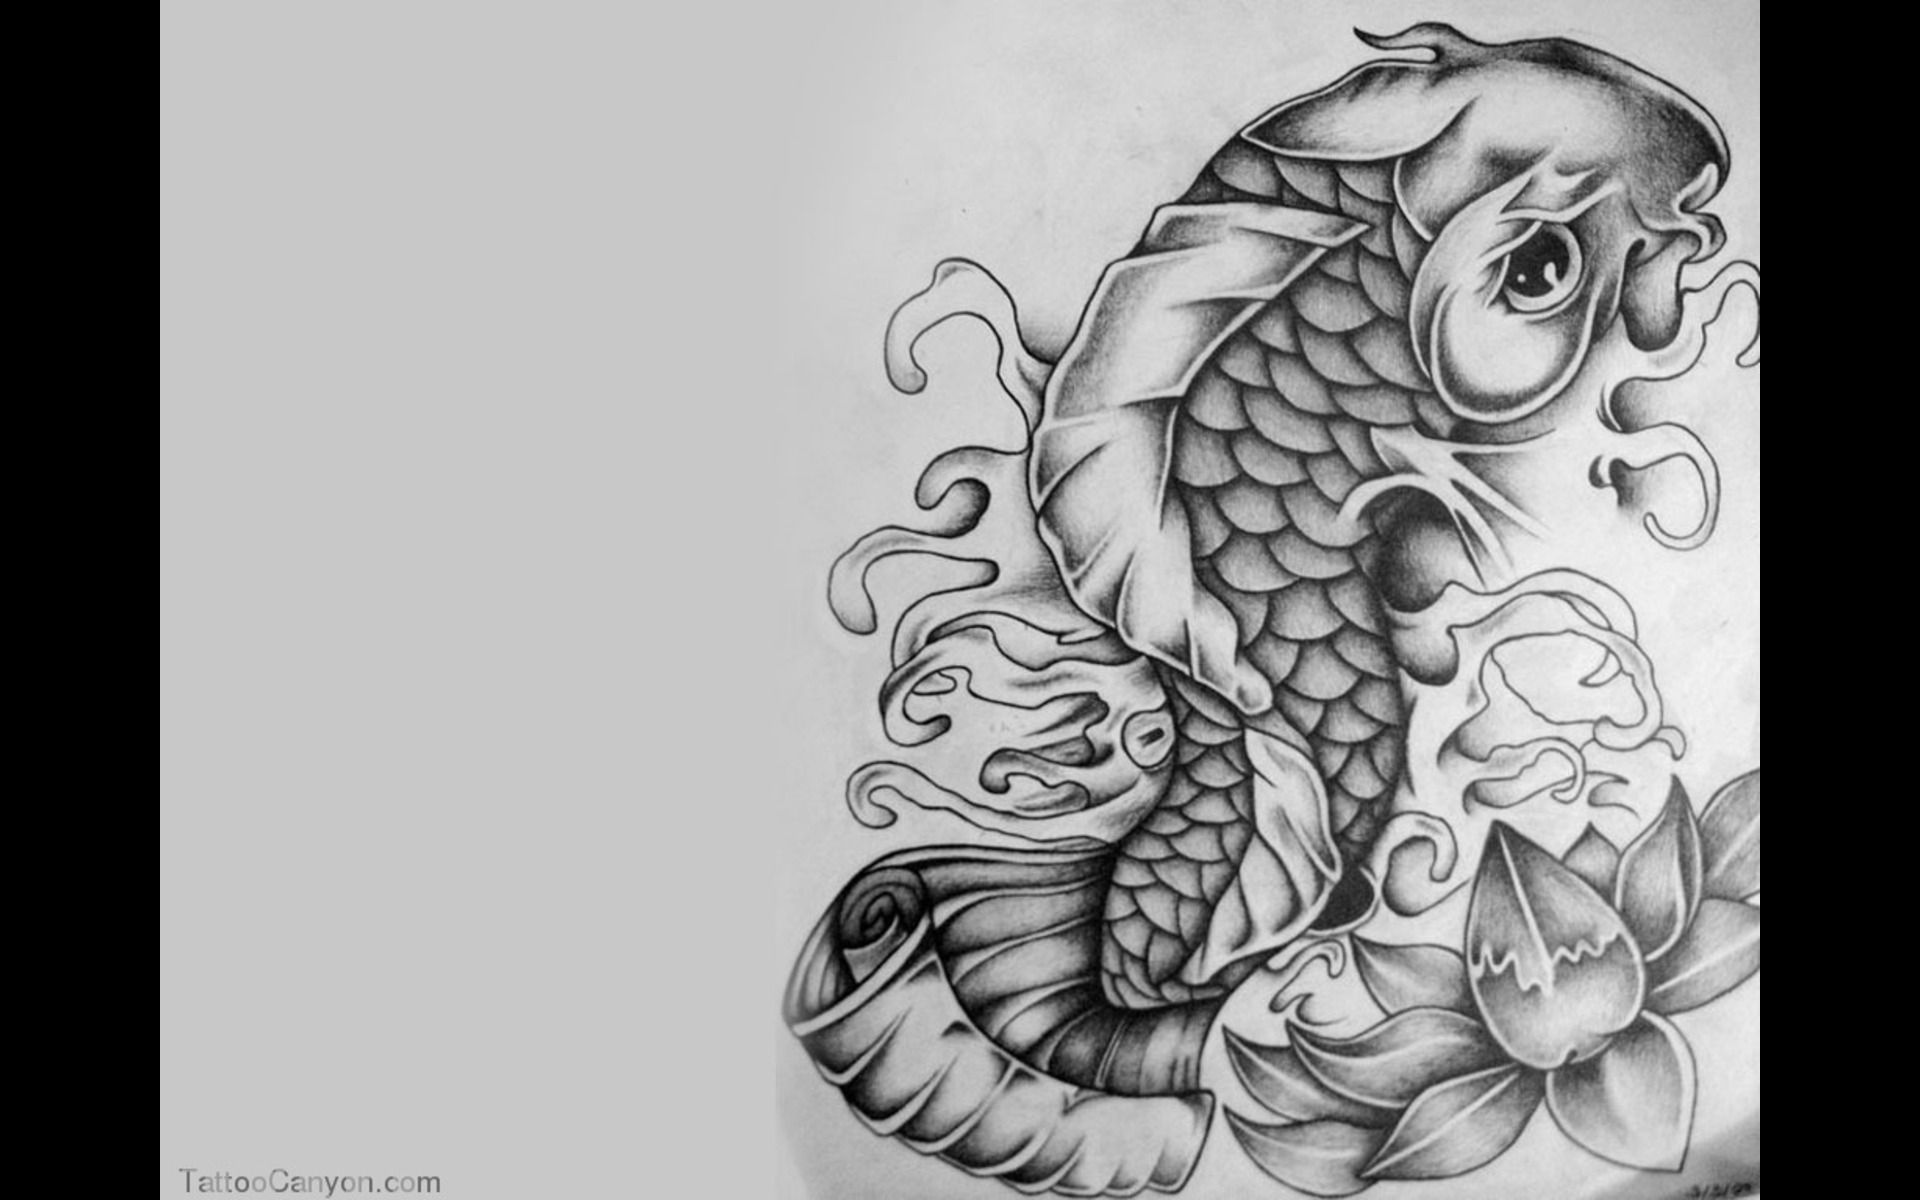 45 amazing japanese tattoo designs tattoo easily - Tattoo Design Wallpapers Wallpaper Cave